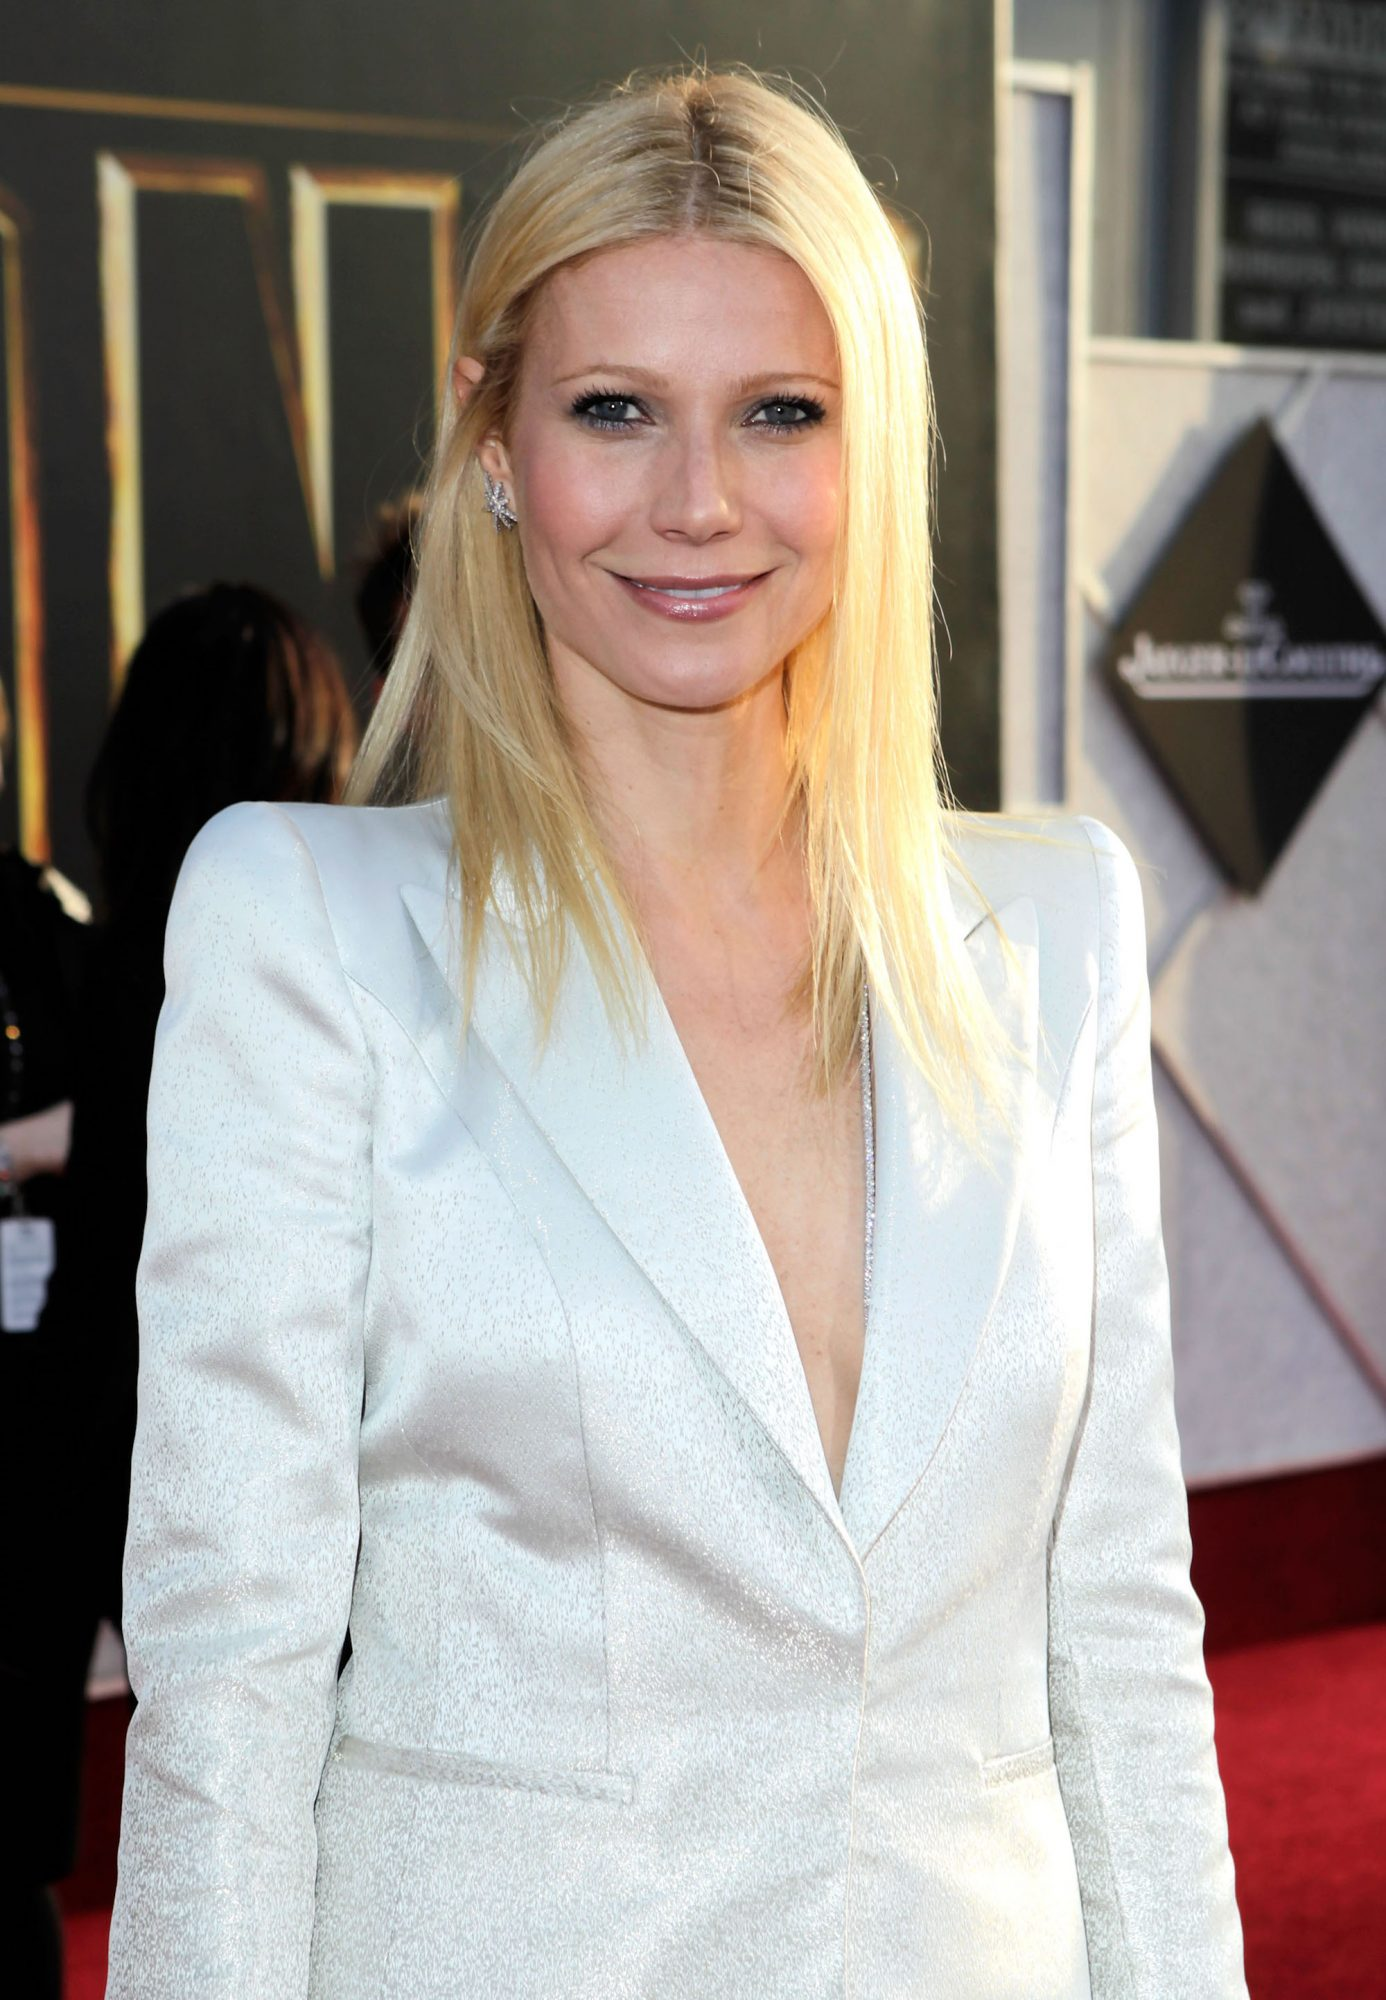 Gwyneth Paltrow's Second Wedding Look Is the Polar Opposite of Her Valentino Gown